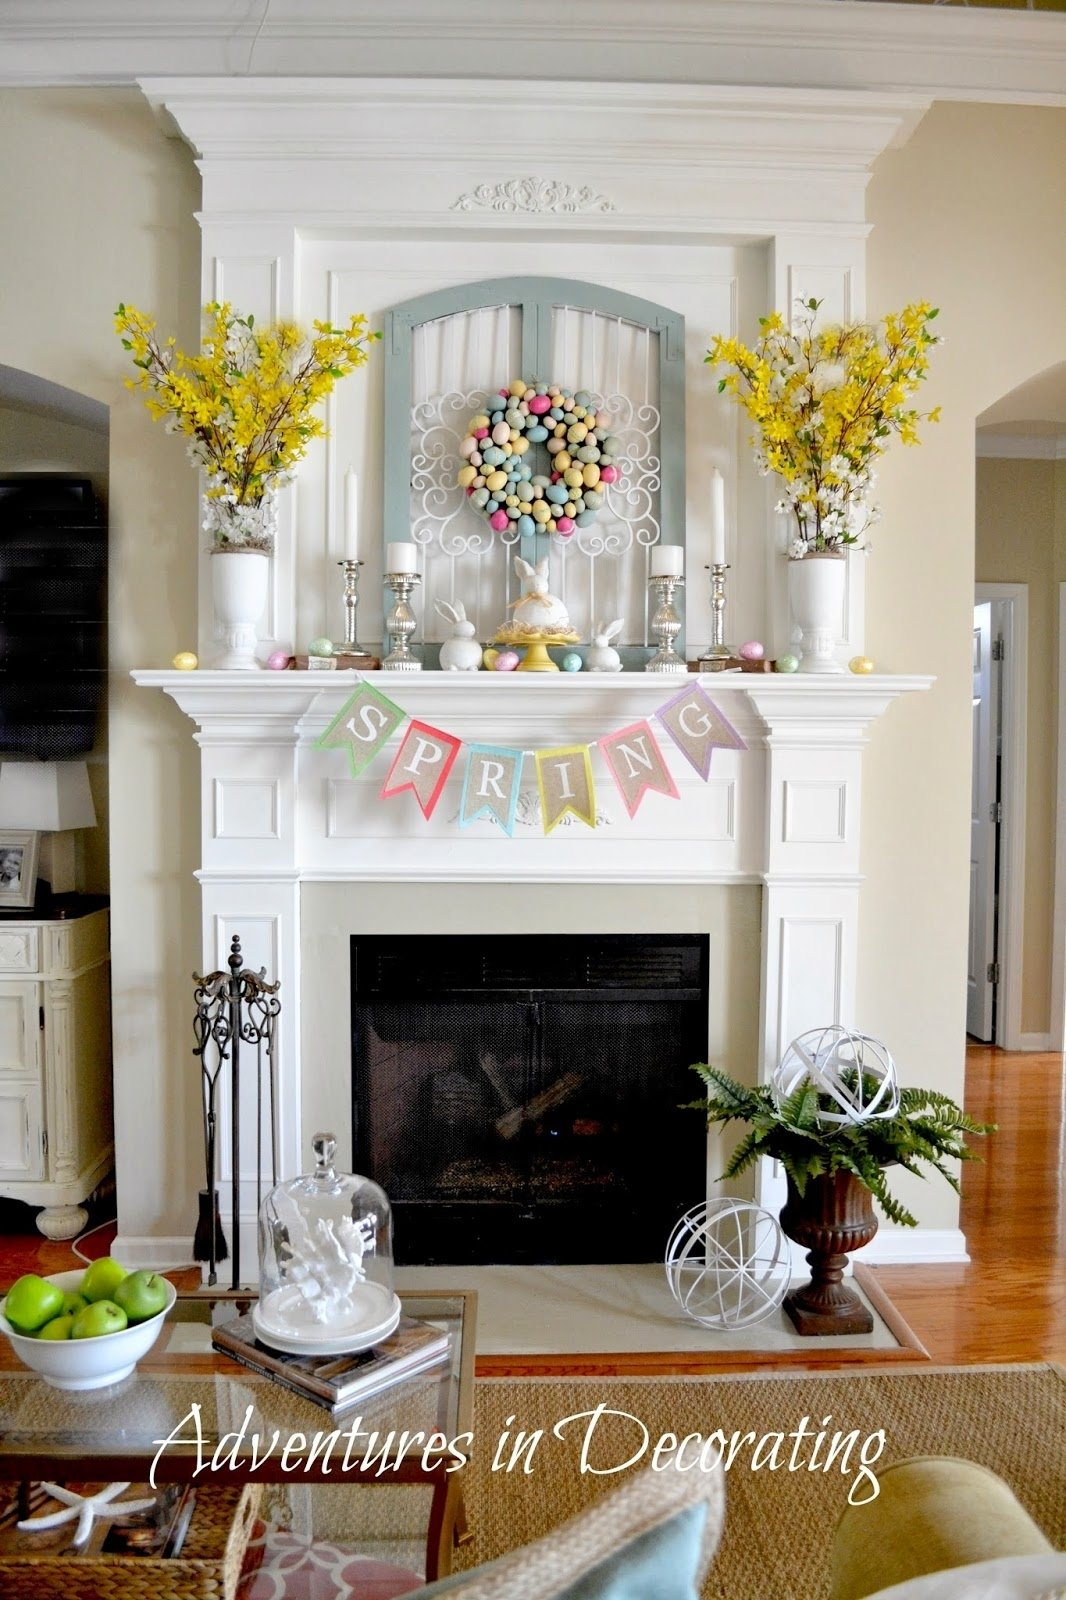 adventures in decorating: styling our spring mantel | mantels for